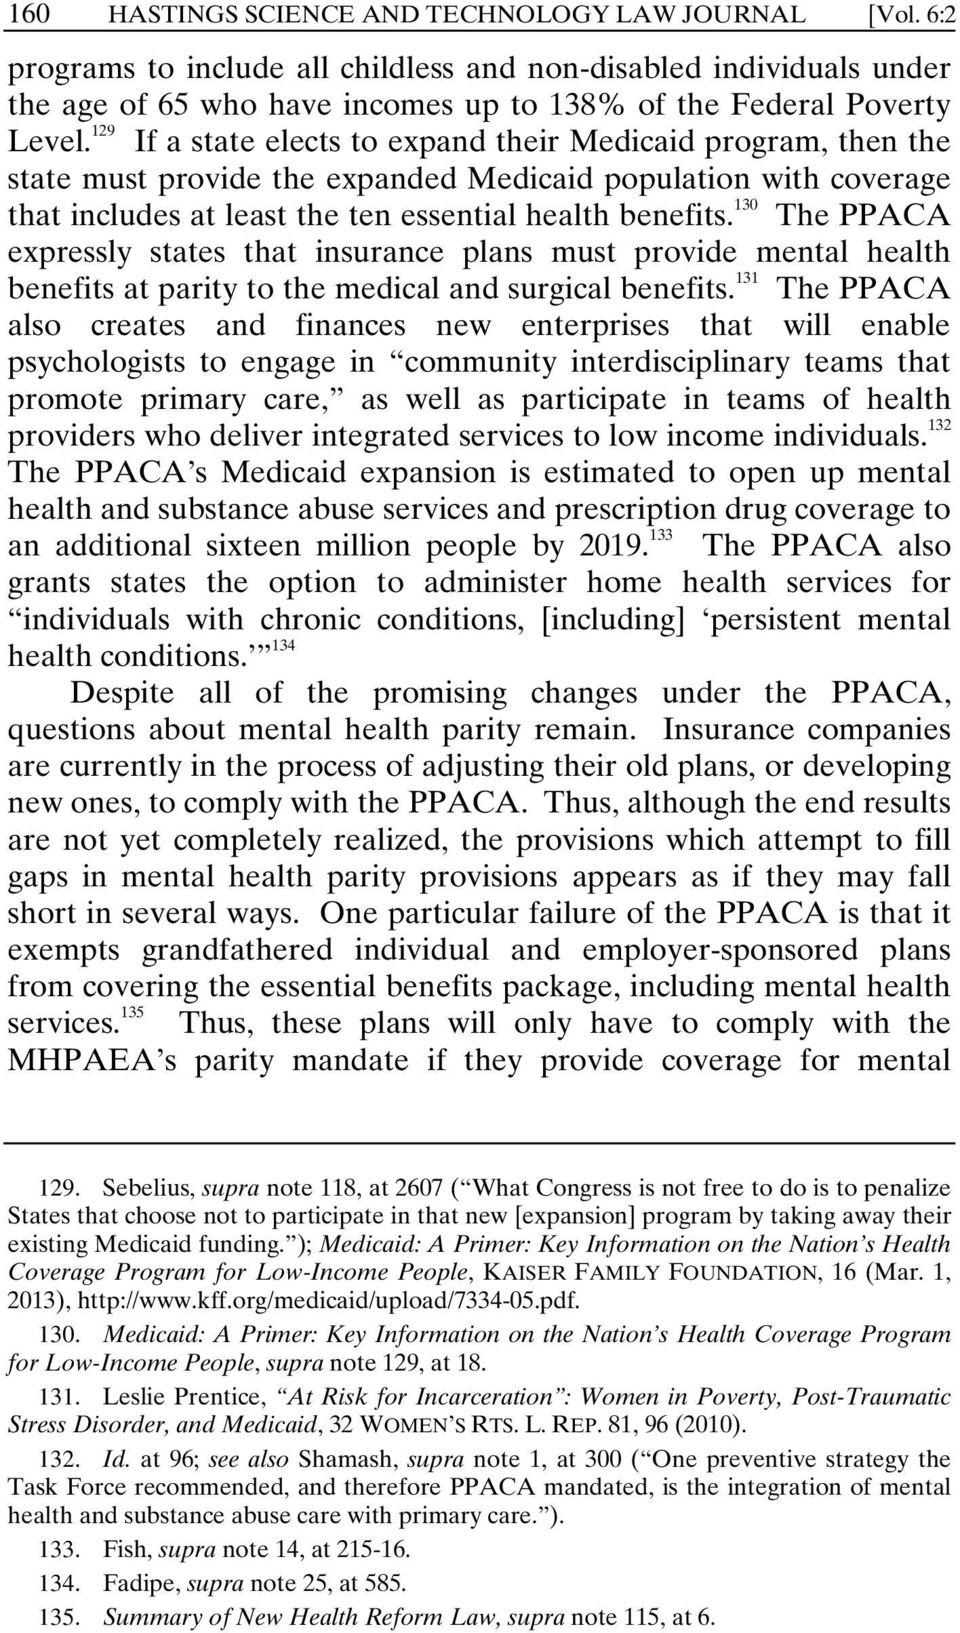 130 The PPACA expressly states that insurance plans must provide mental health benefits at parity to the medical and surgical benefits.